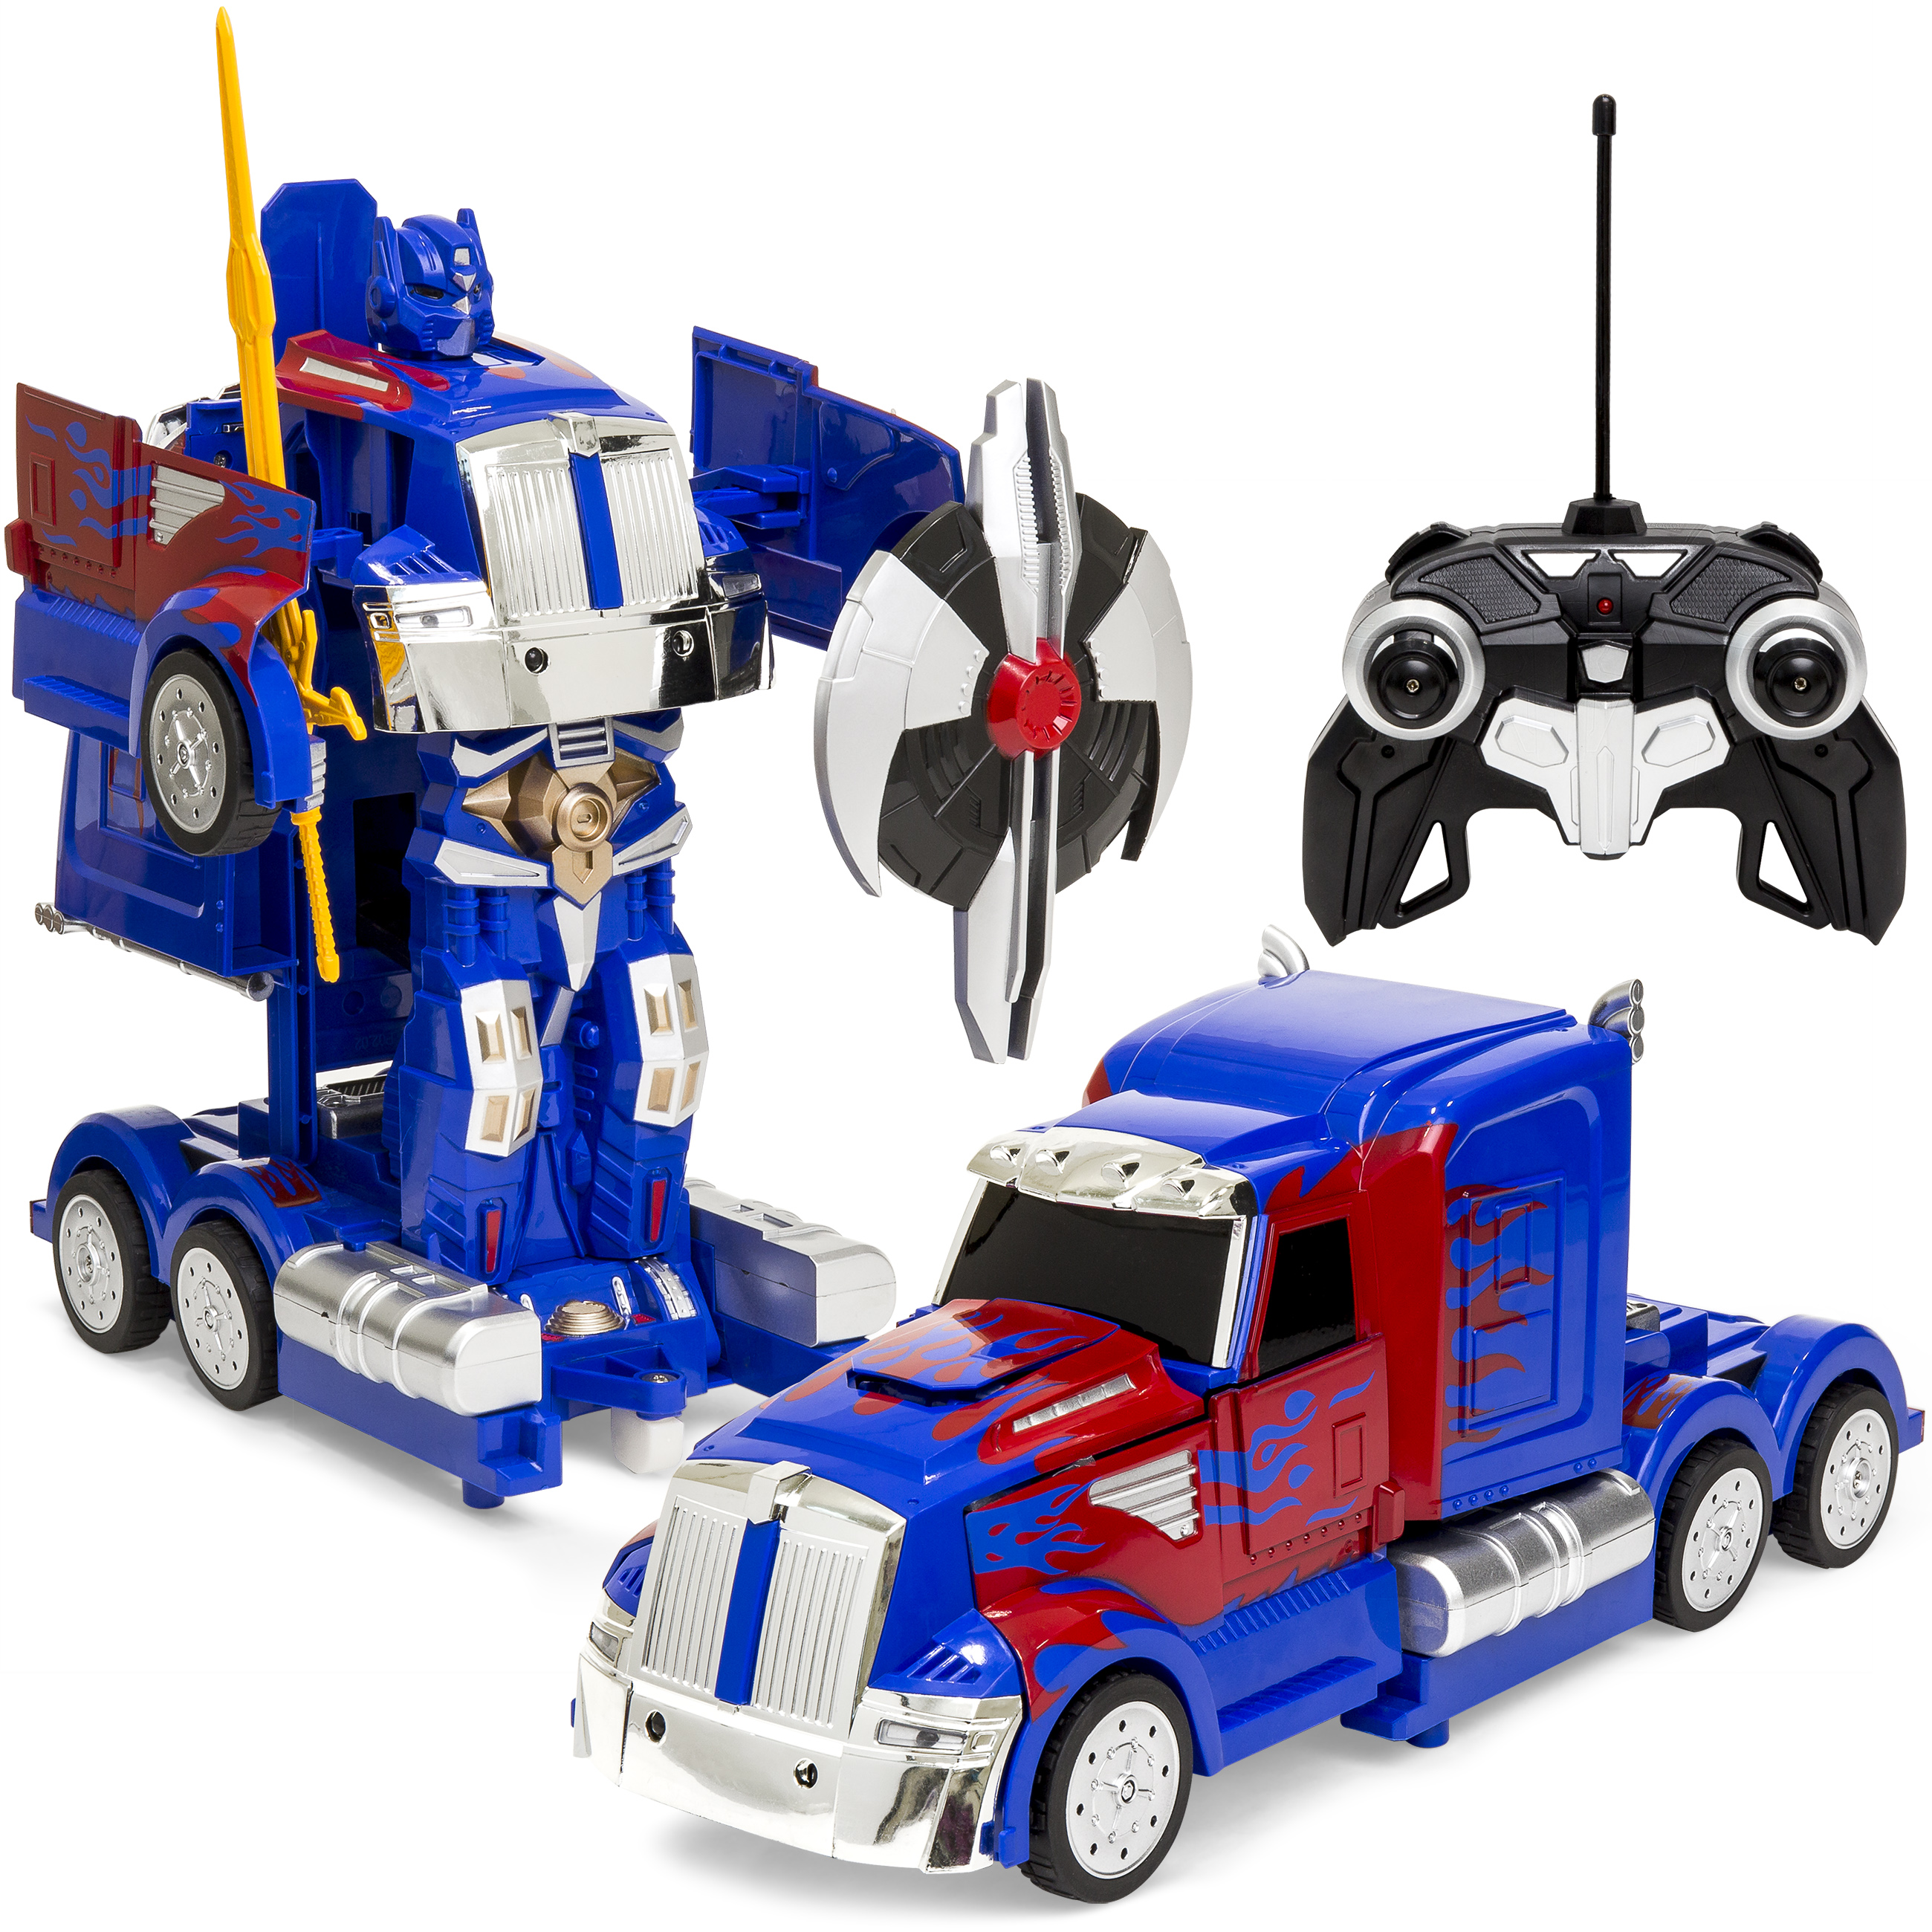 Best Choice Products 27MHz Transforming Semi-Truck Robot RC Toy w  Dance Modes, Music,... by Best Choice Products